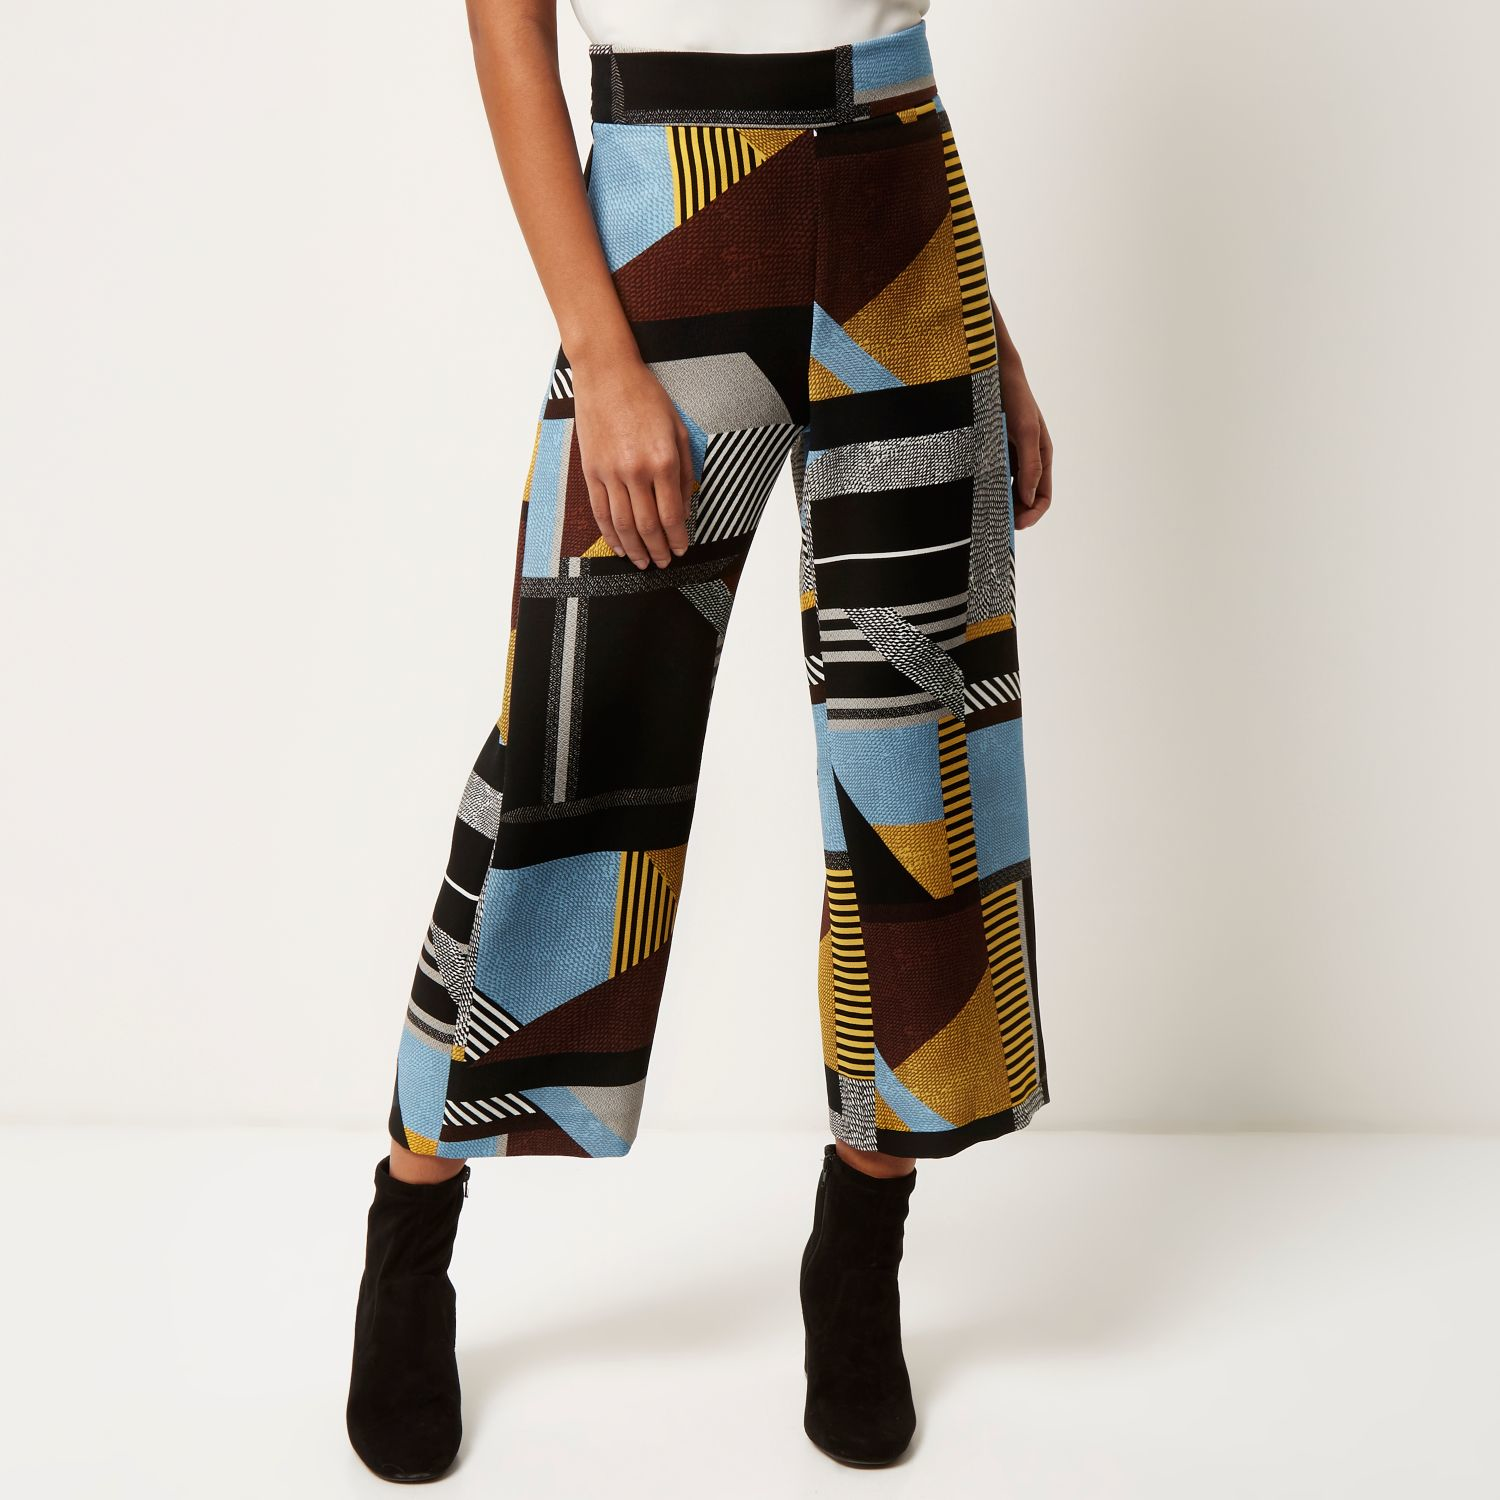 River Island Patterned Trousers